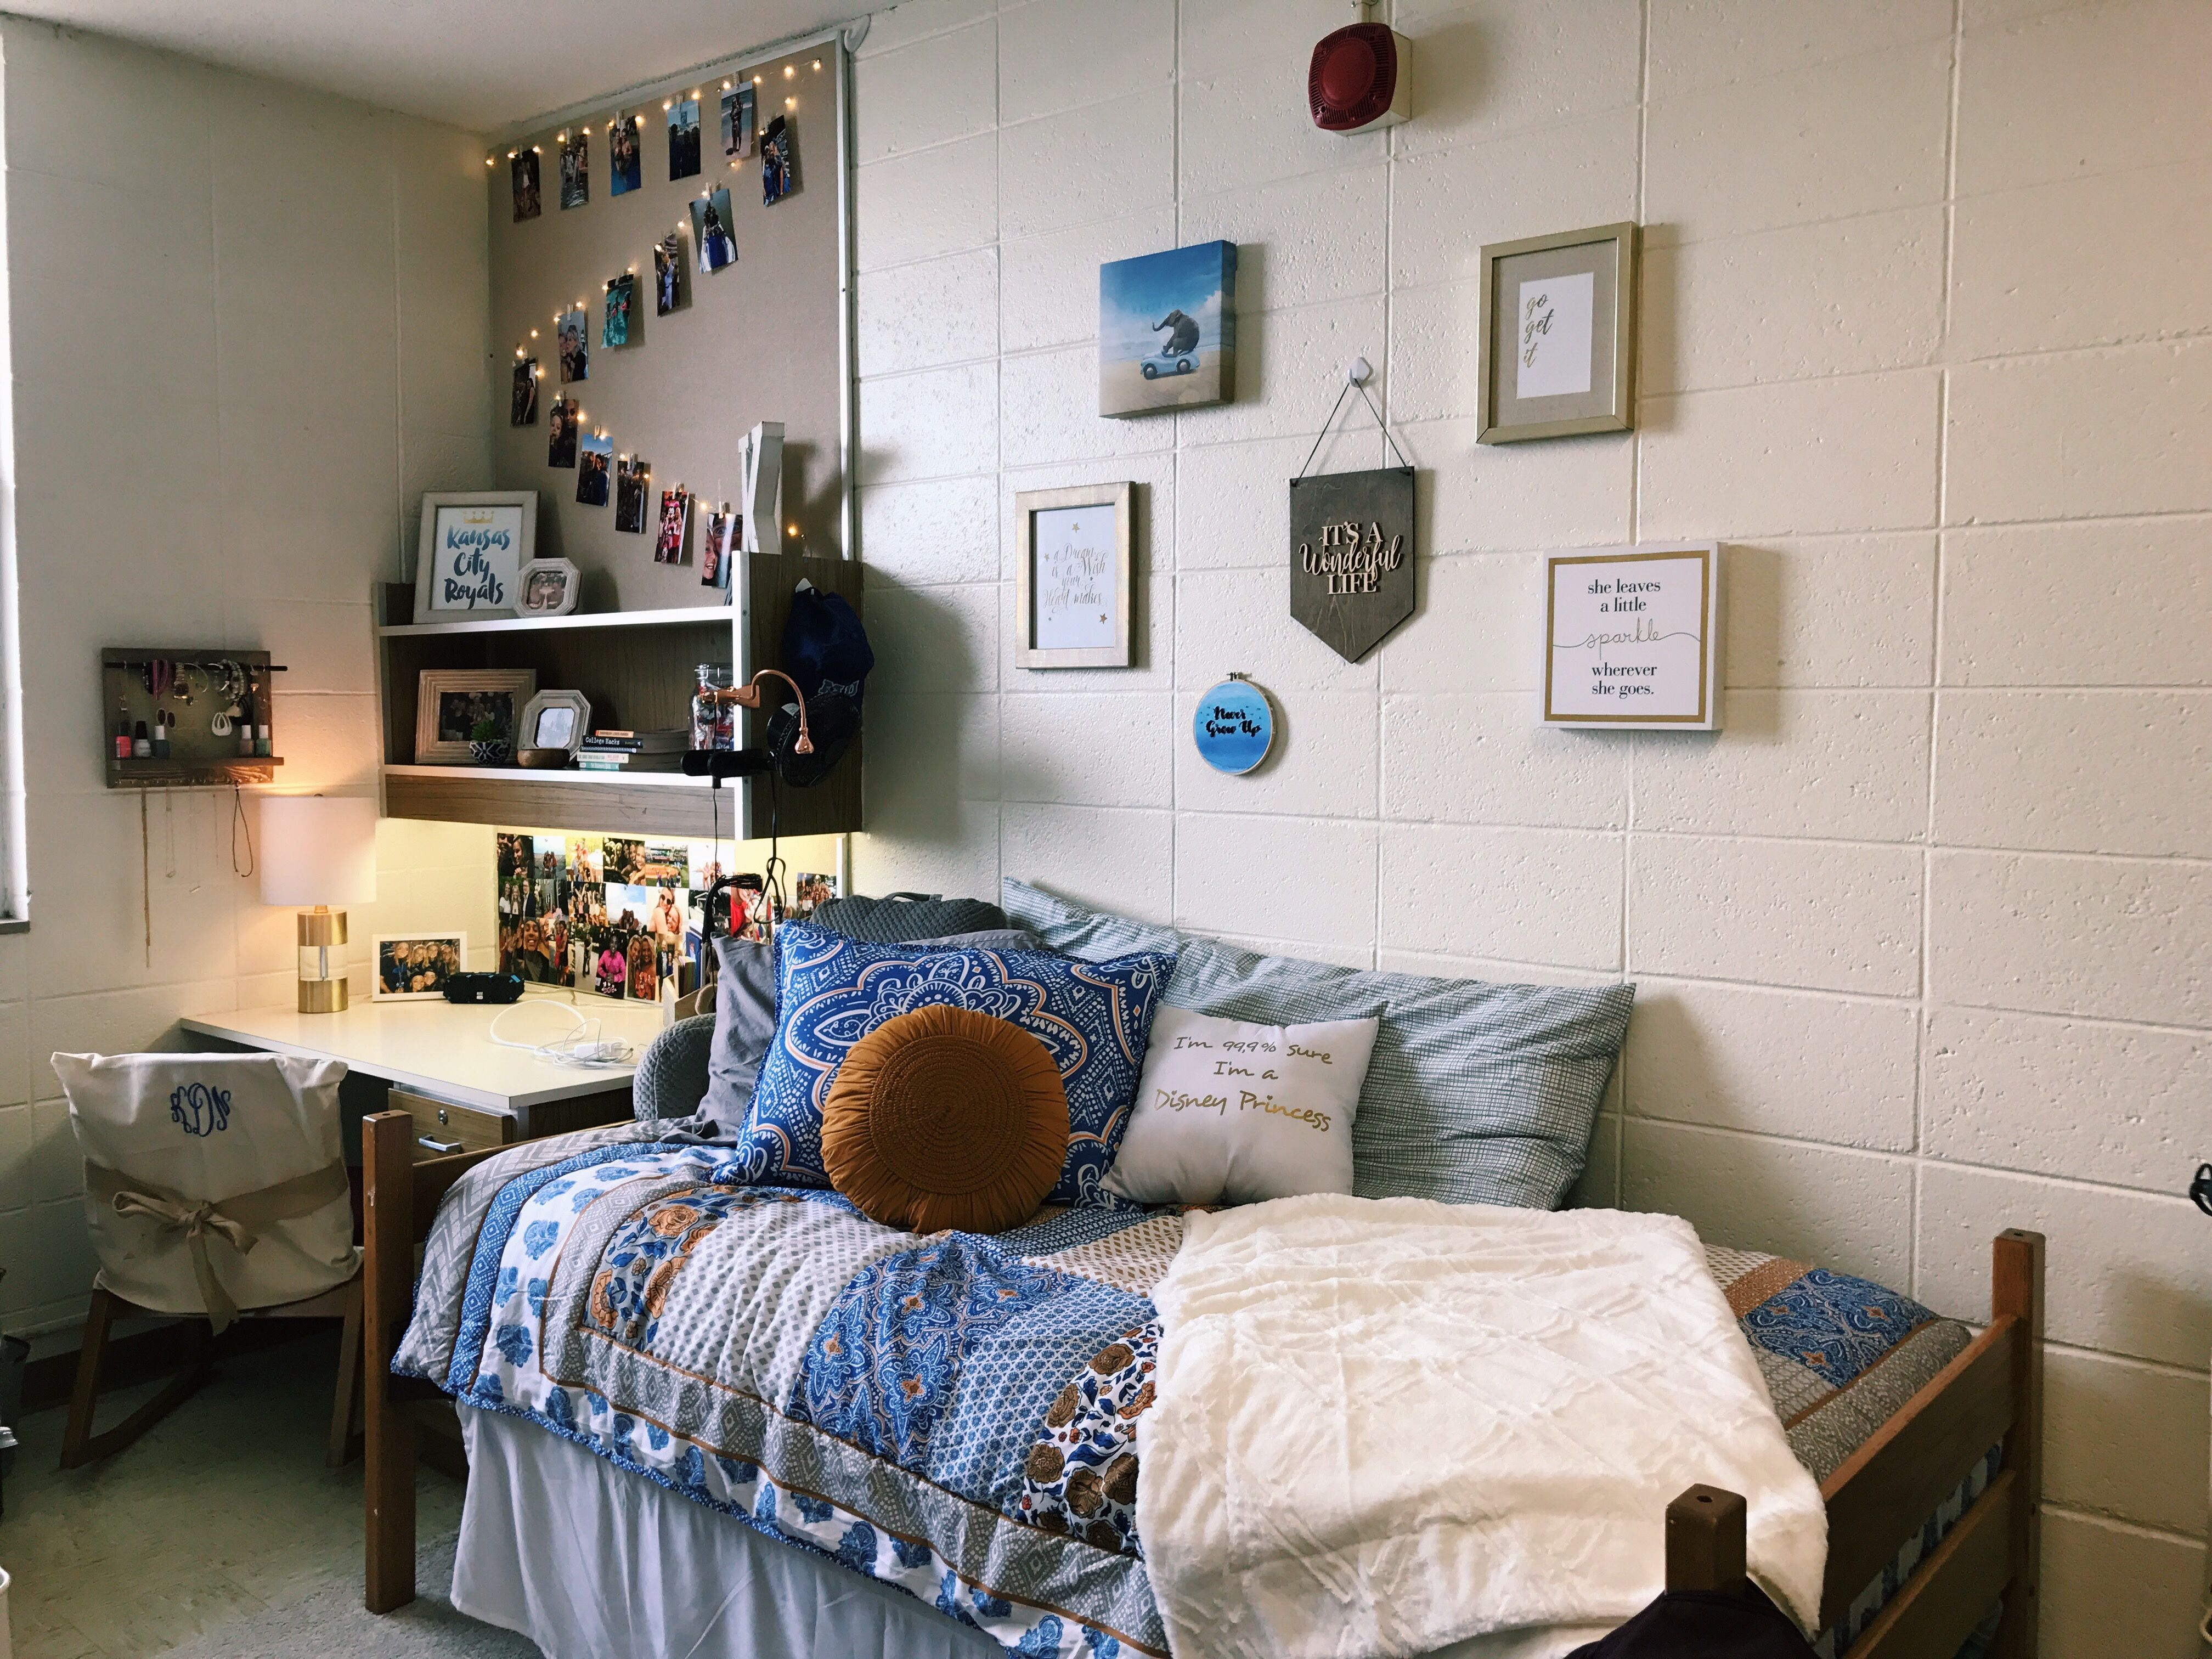 Citing growth, MSU ponders building new residence hall